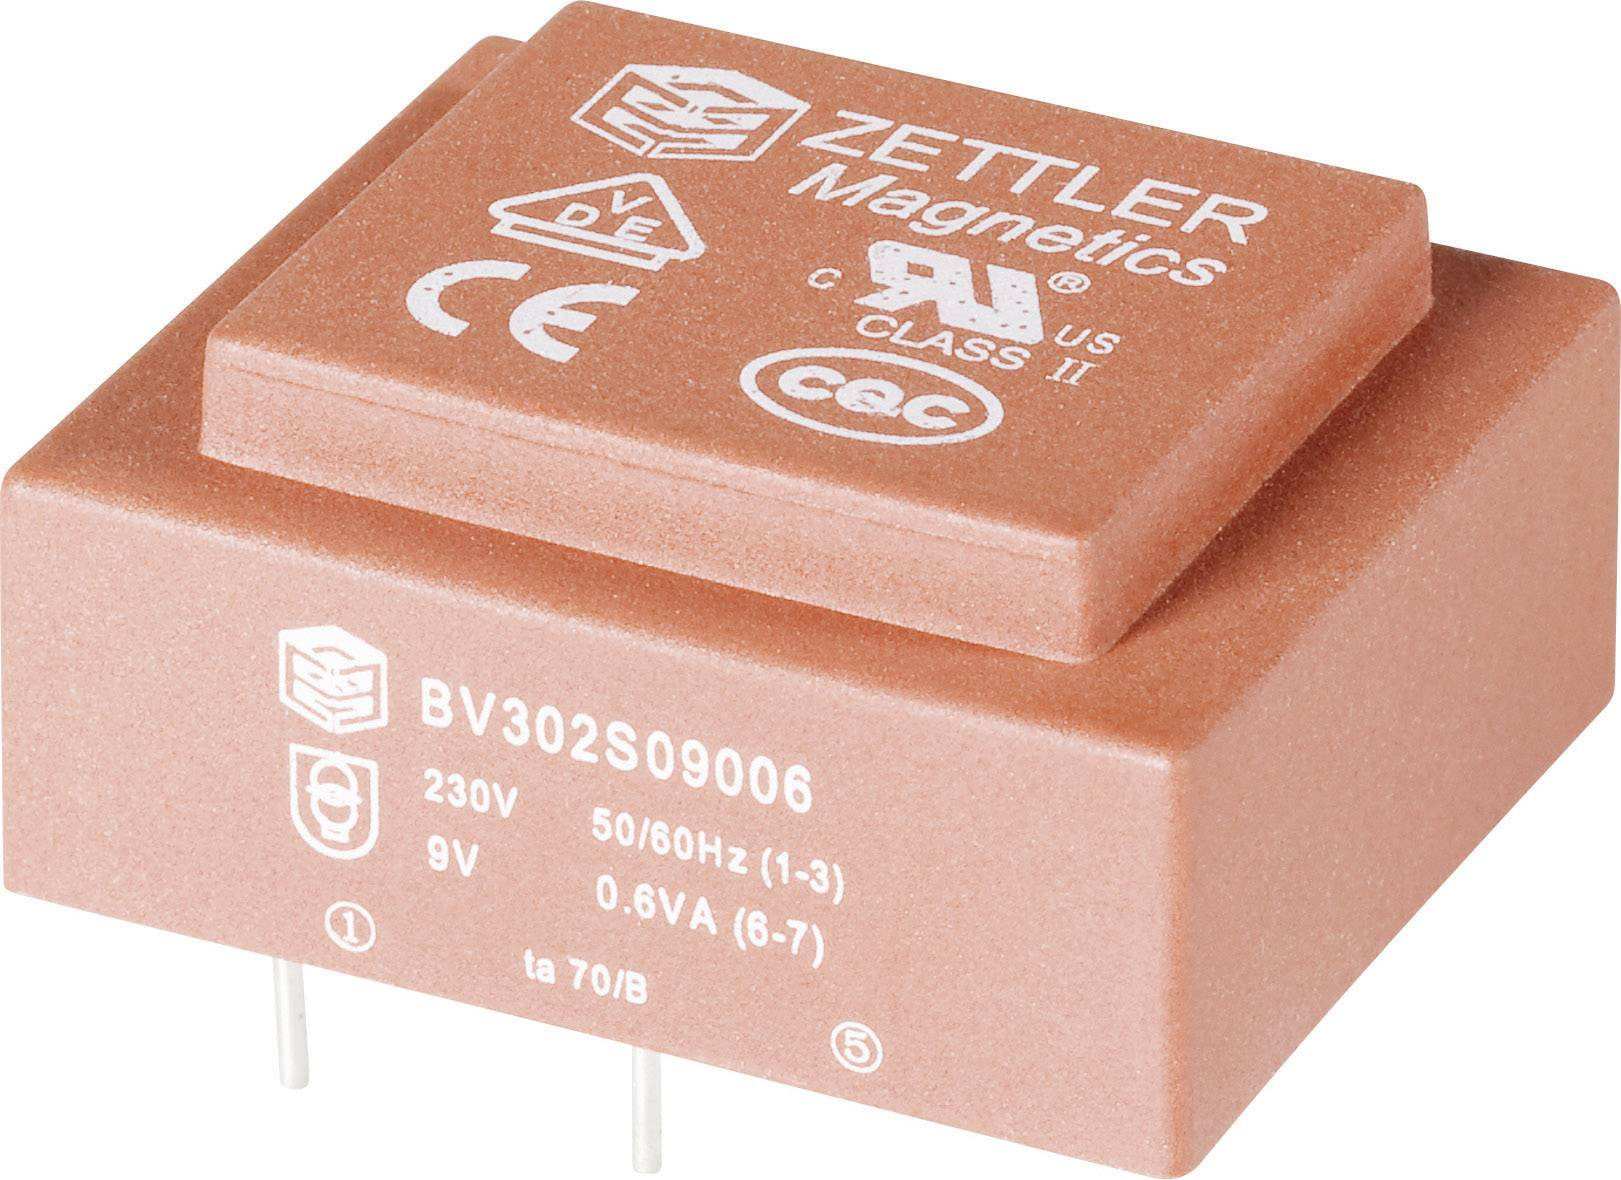 Transformátor do DPS Zettler Magnetics El30, 230 V/18 V, 33 mA, 1,5 VA